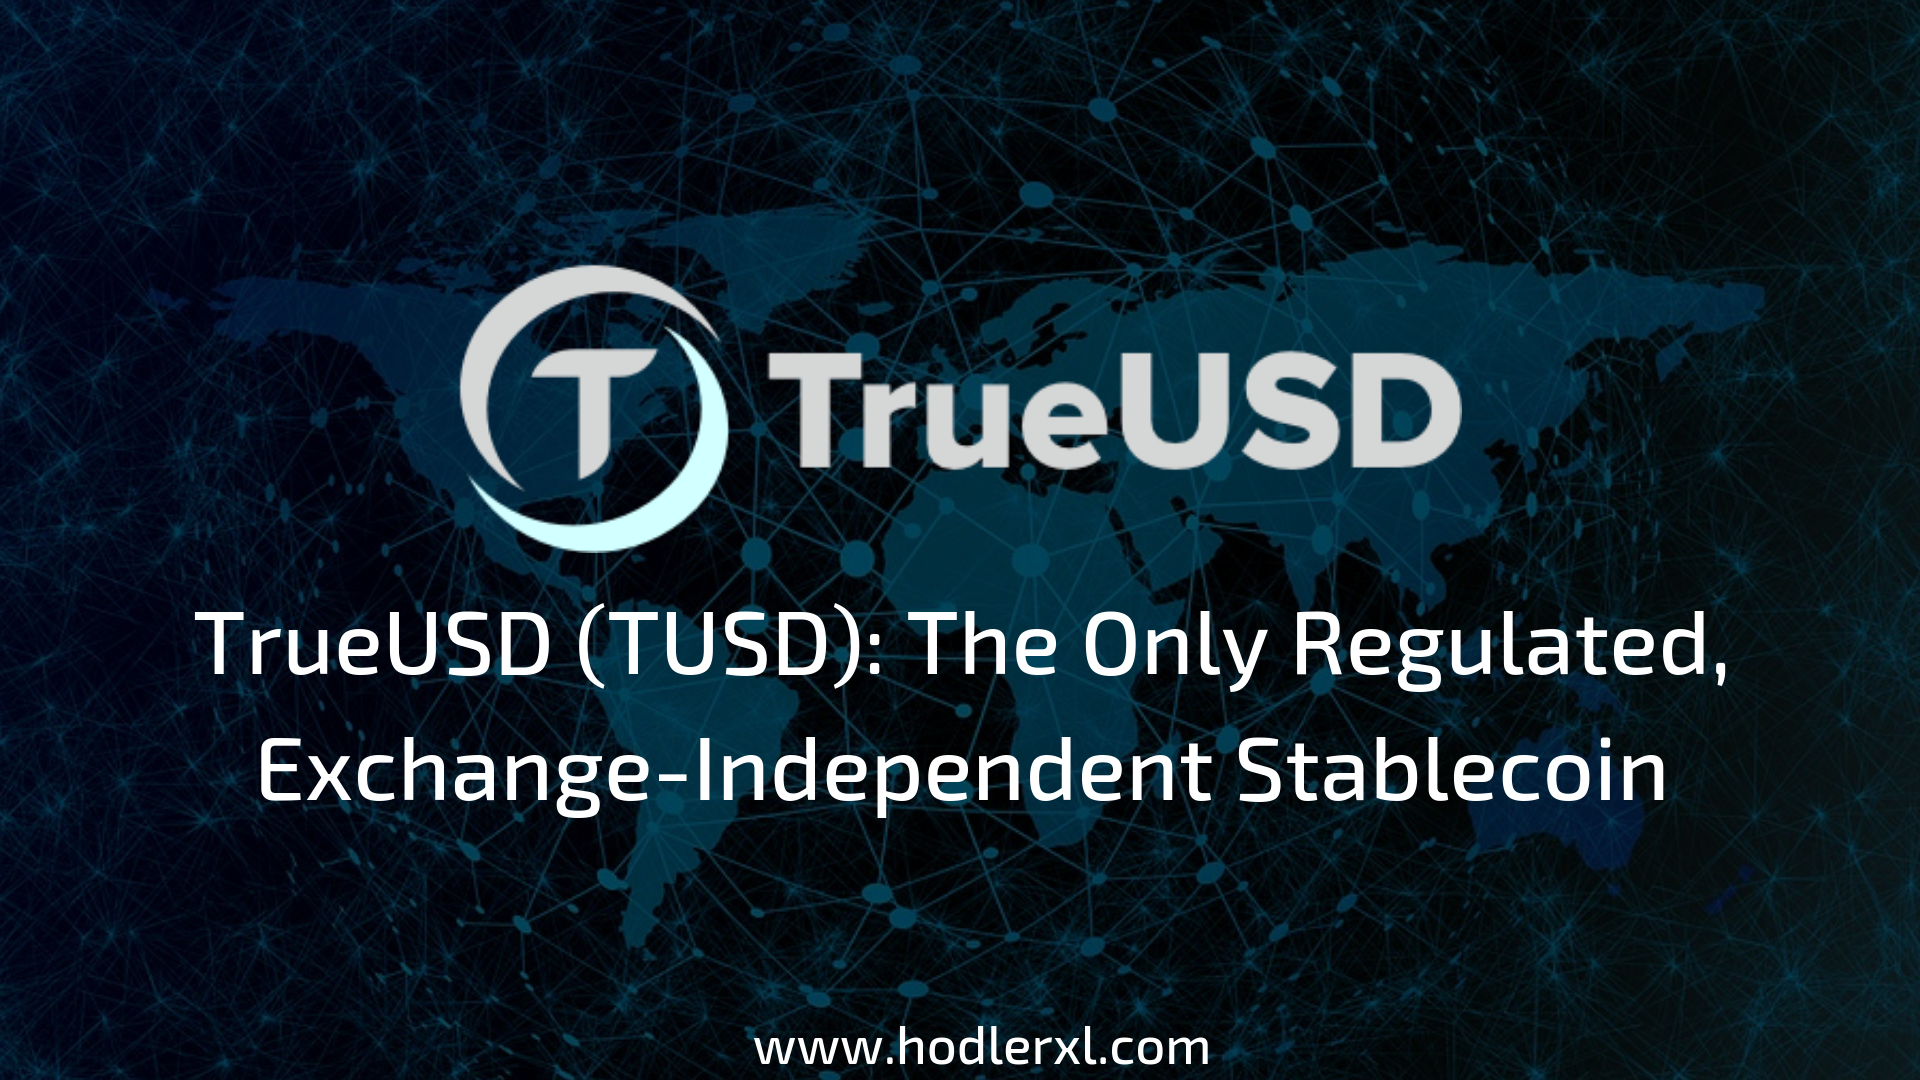 TrueUSD (TUSD)_ The Only Regulated, Exchange-Independent Stablecoin